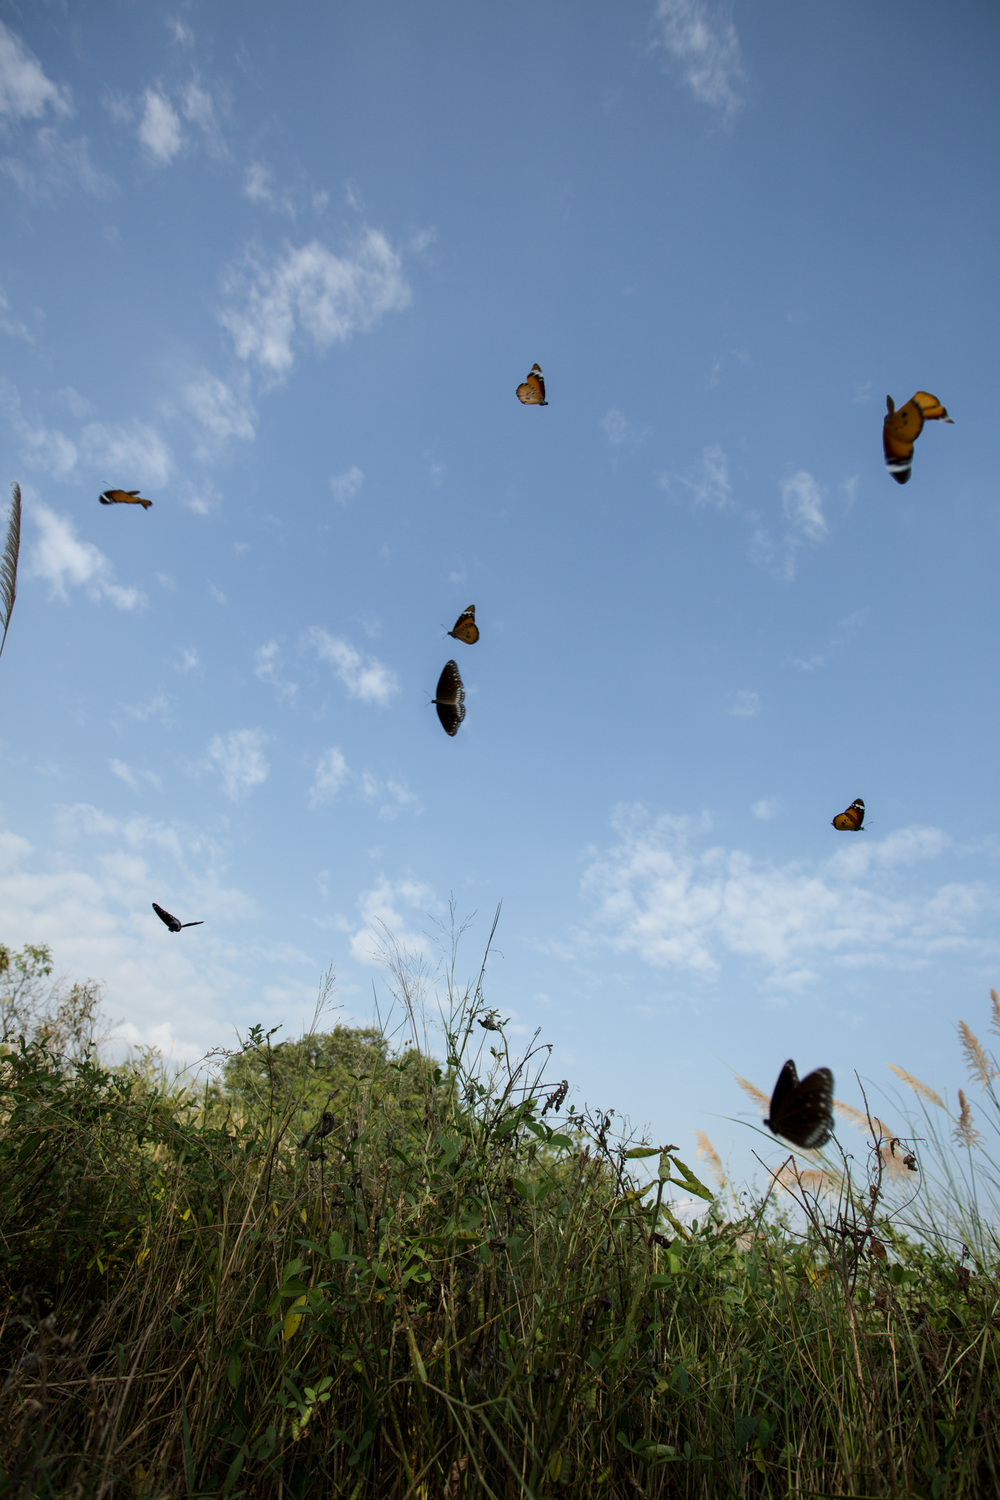 In order to get all the butterflies in focus, i had to increase my aperture so that the depth-of-field was large enough to capture them all (well, most of them)! :)